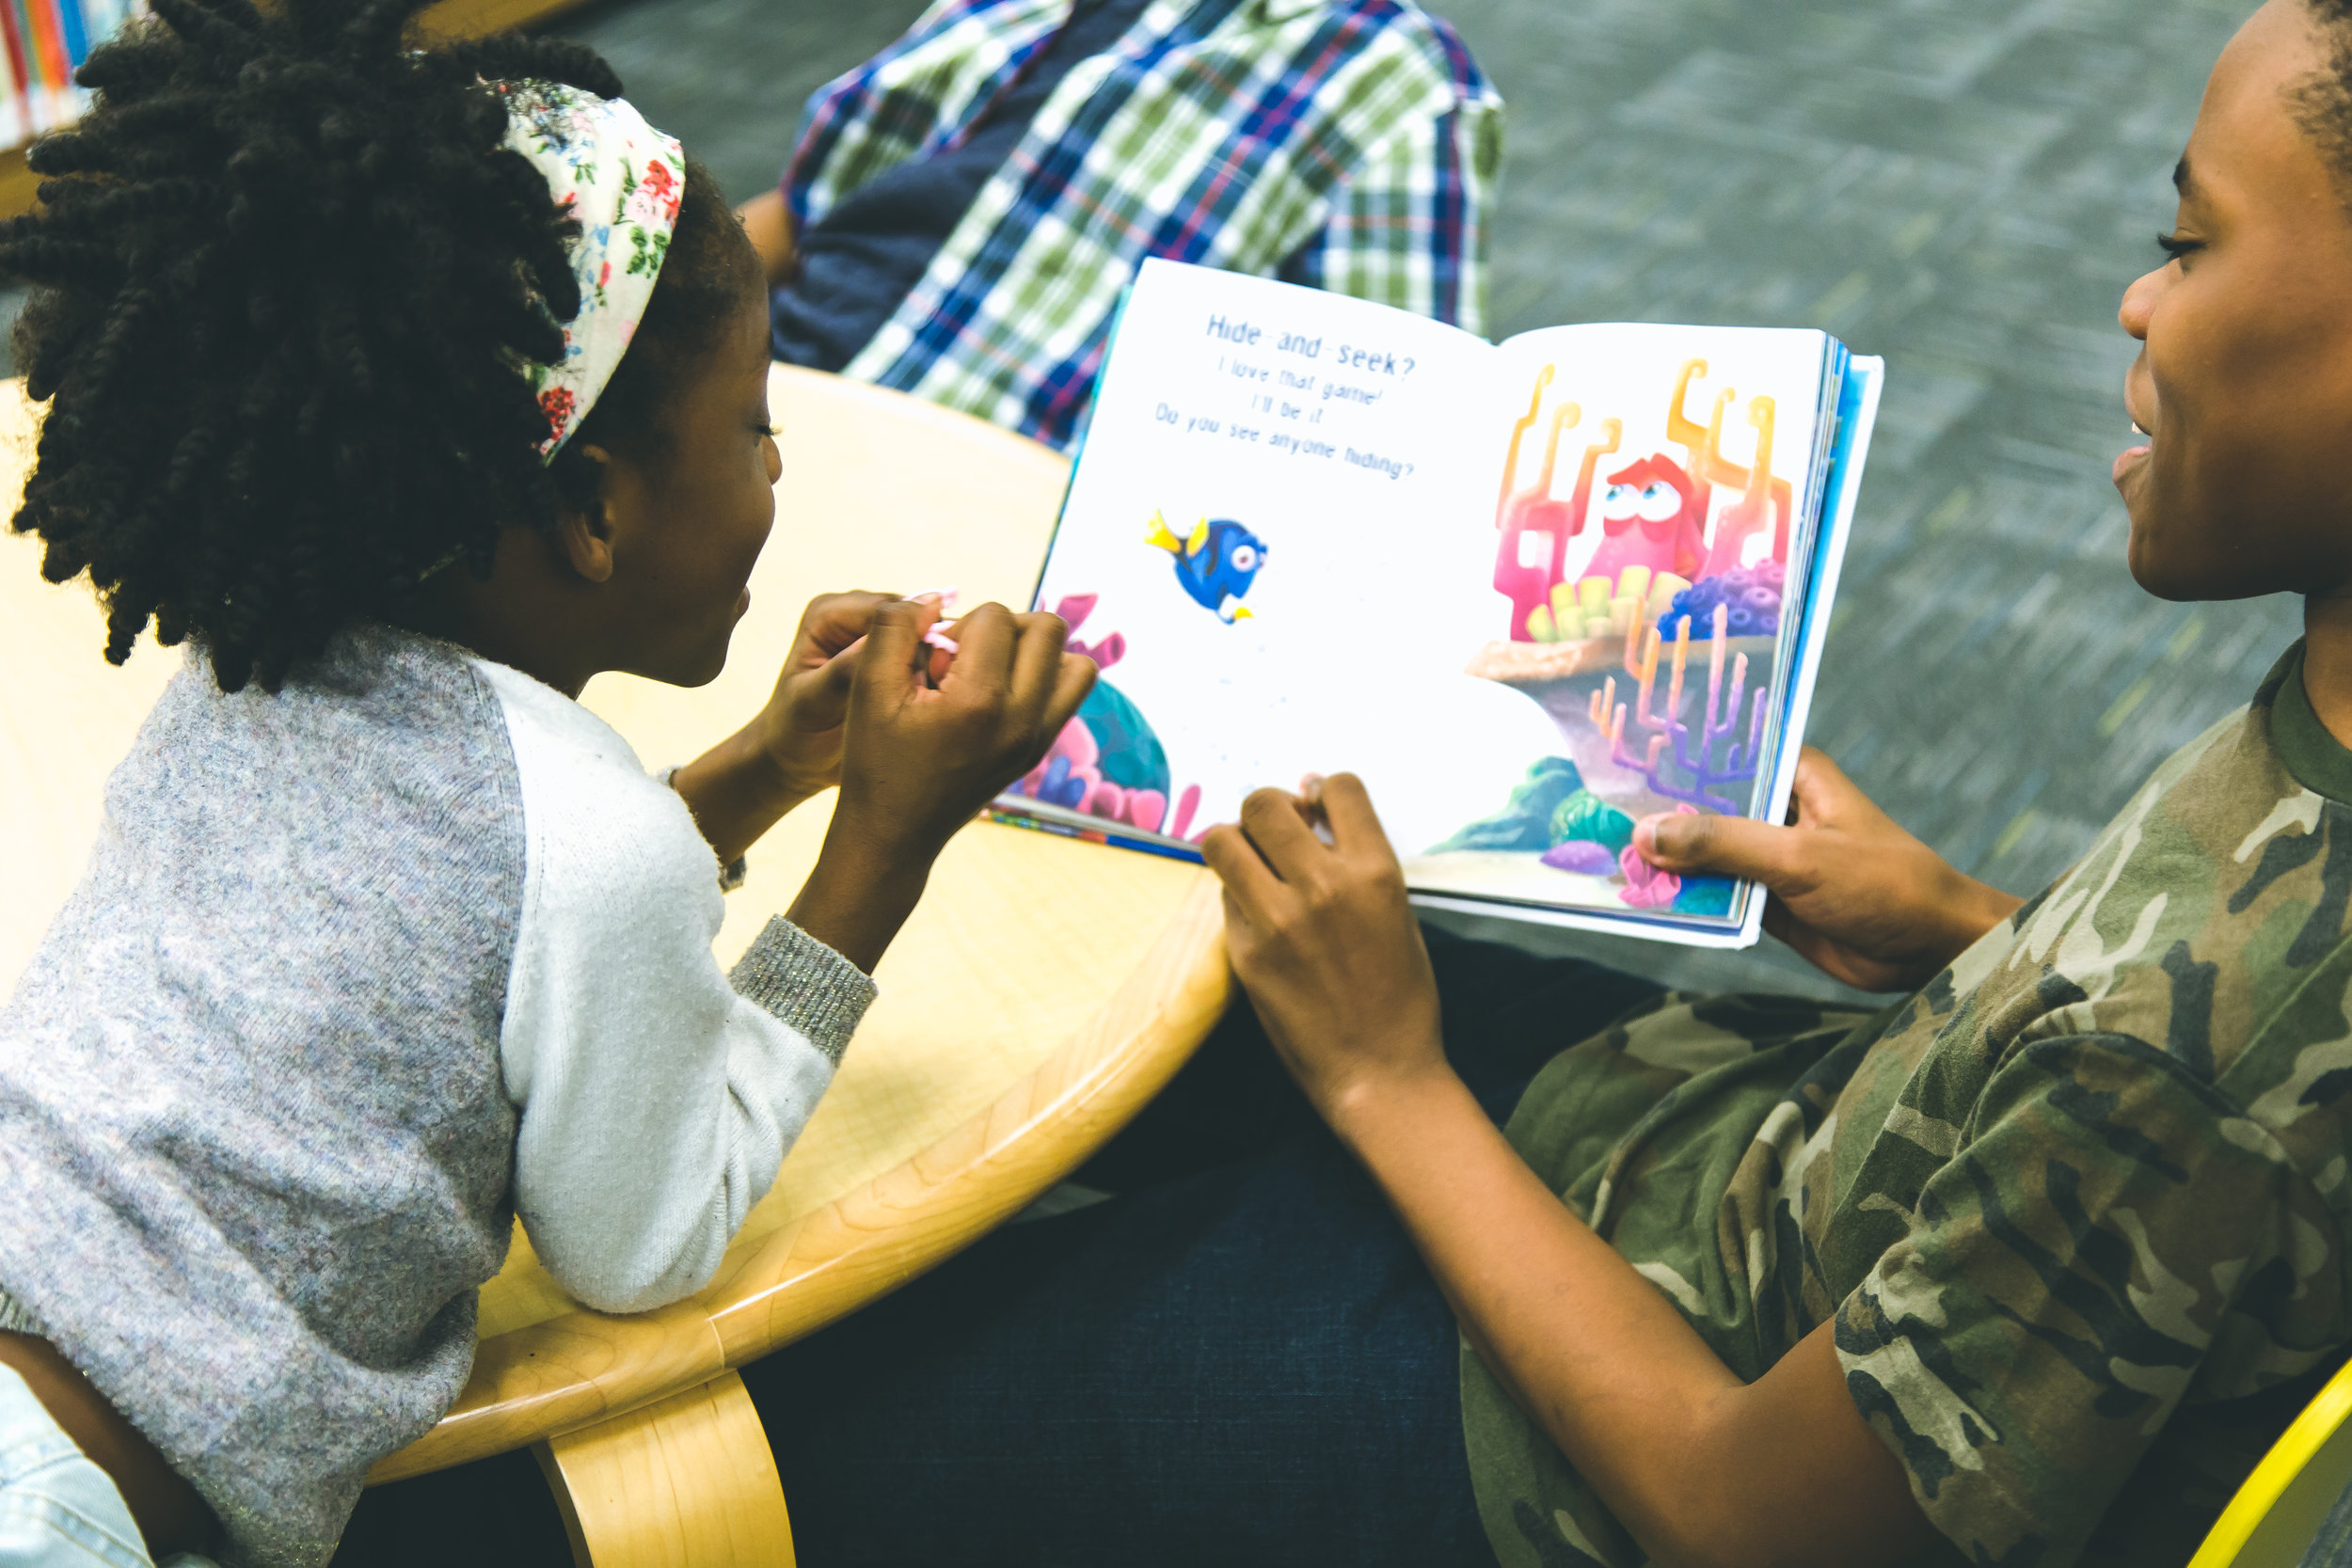 Have older siblings help out - It is a bonding moment for them and helps little ones to accomplish their reading goals too.